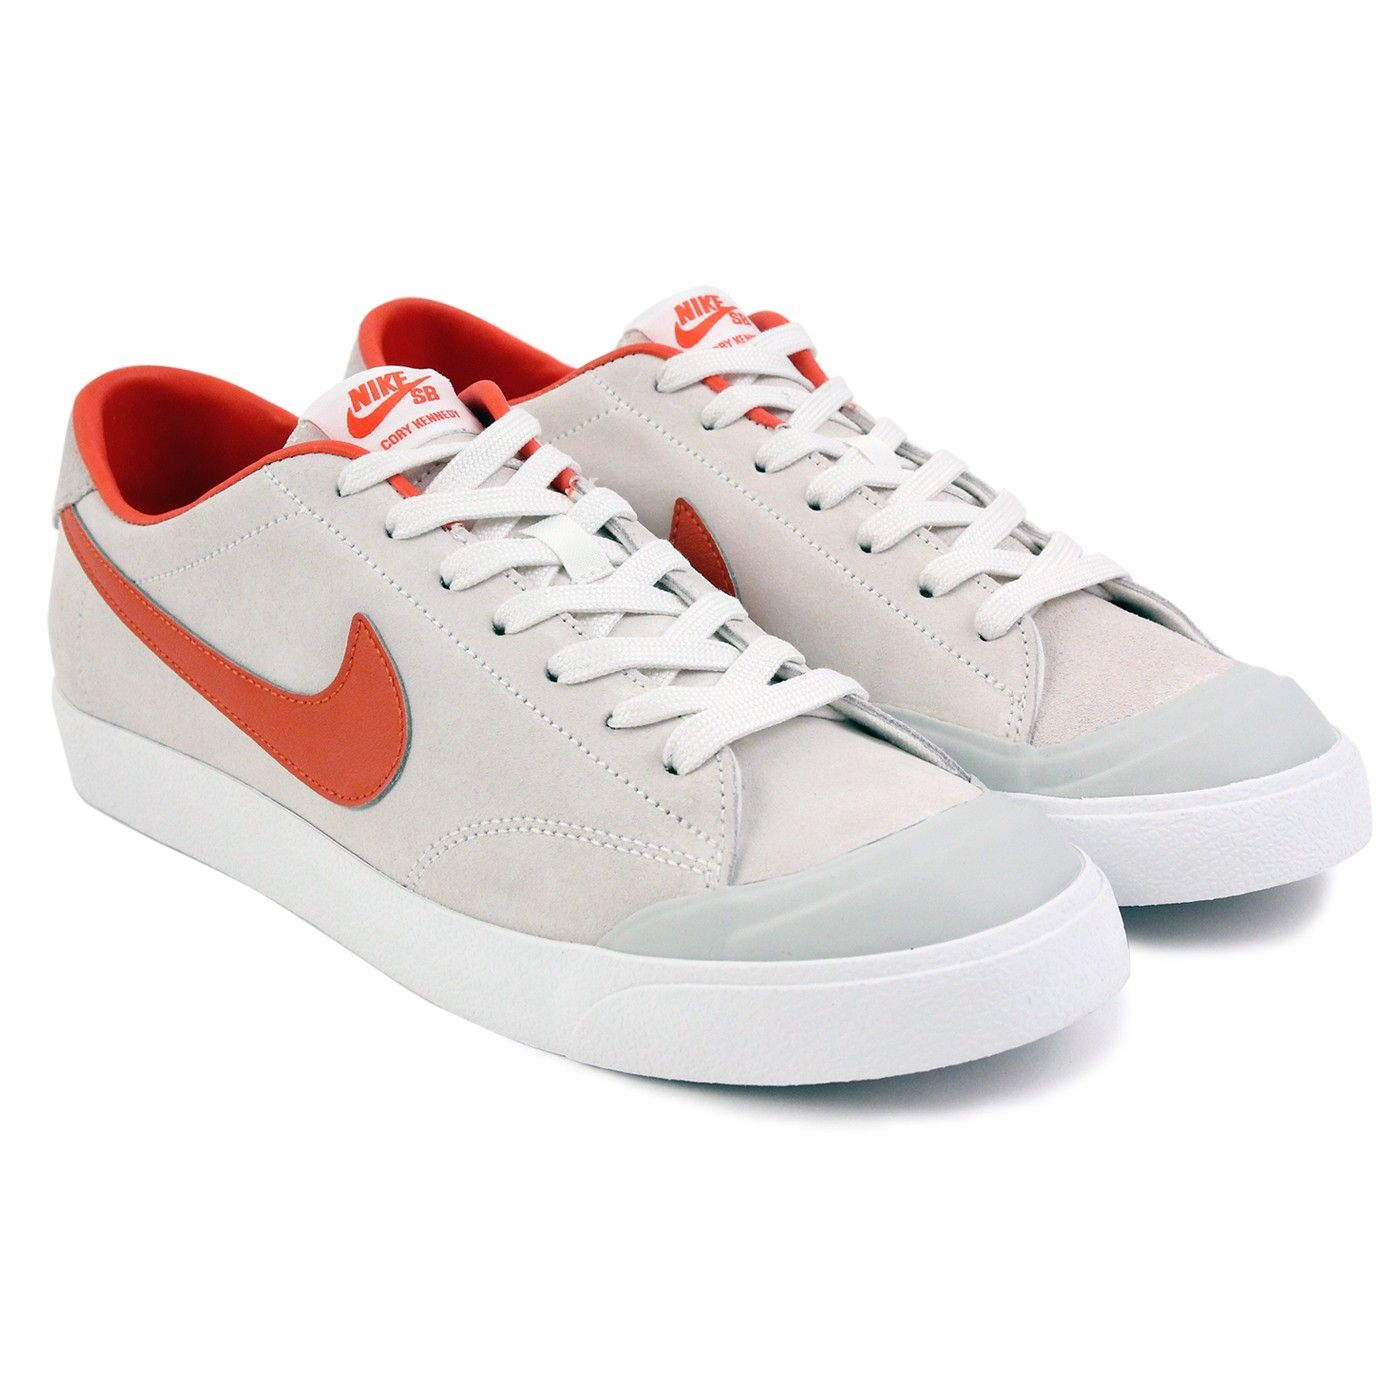 14b13ad39463 Zoom All Court CK Shoes in Ivory   Univ Orange Light-Bone by Nike SB x  Poler Stuff